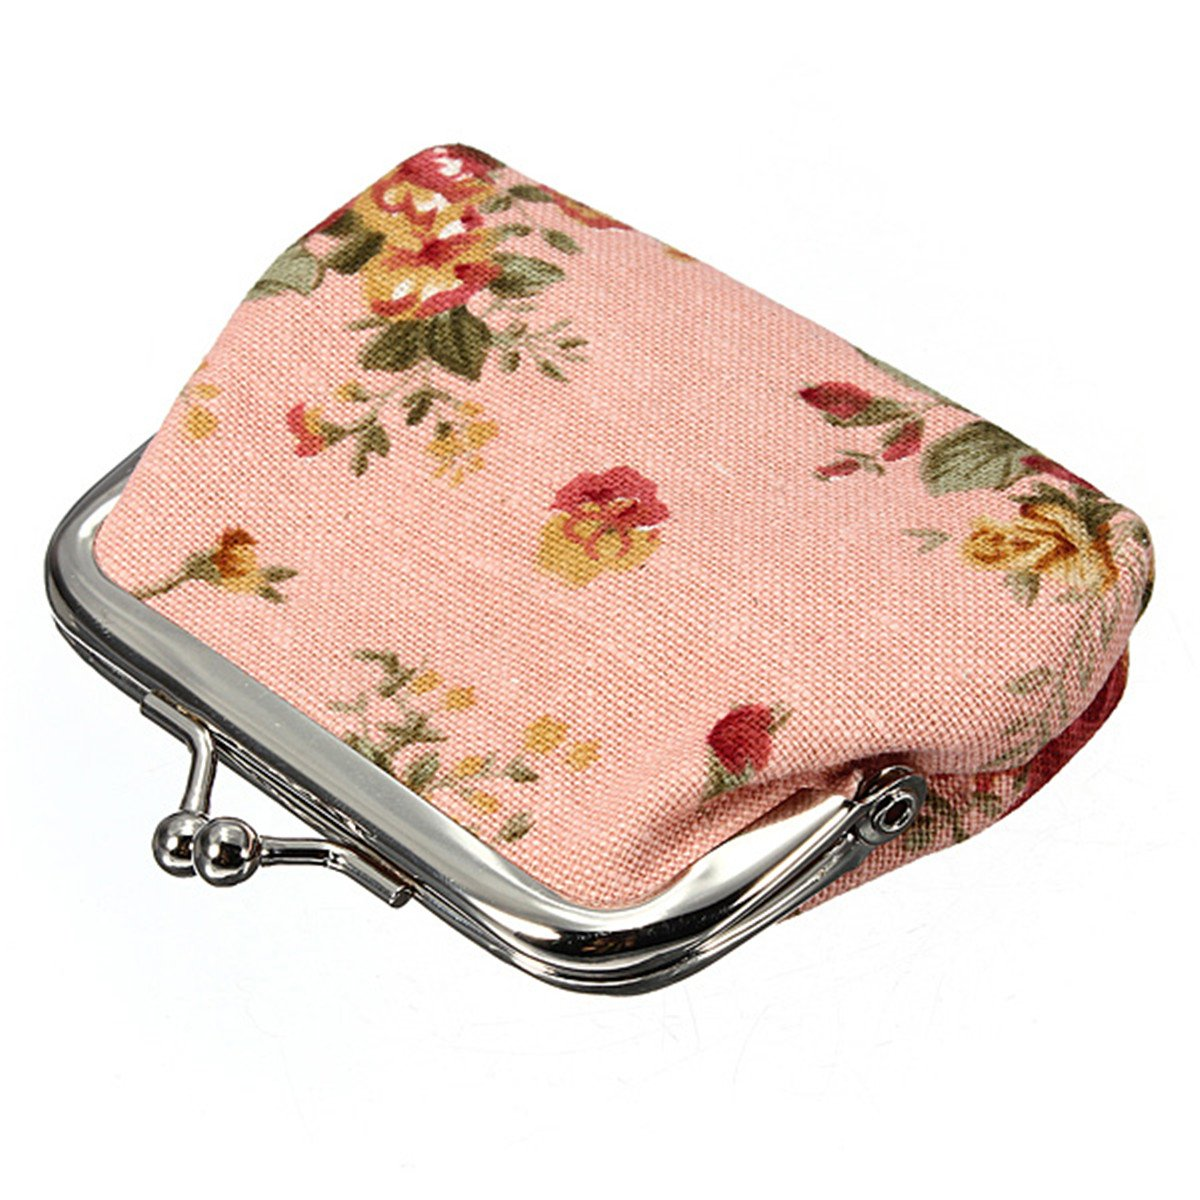 Fashion Boutique Women Roses Floral Fabric Clip Mini Small Coin Pocket Purse Bag Clutch